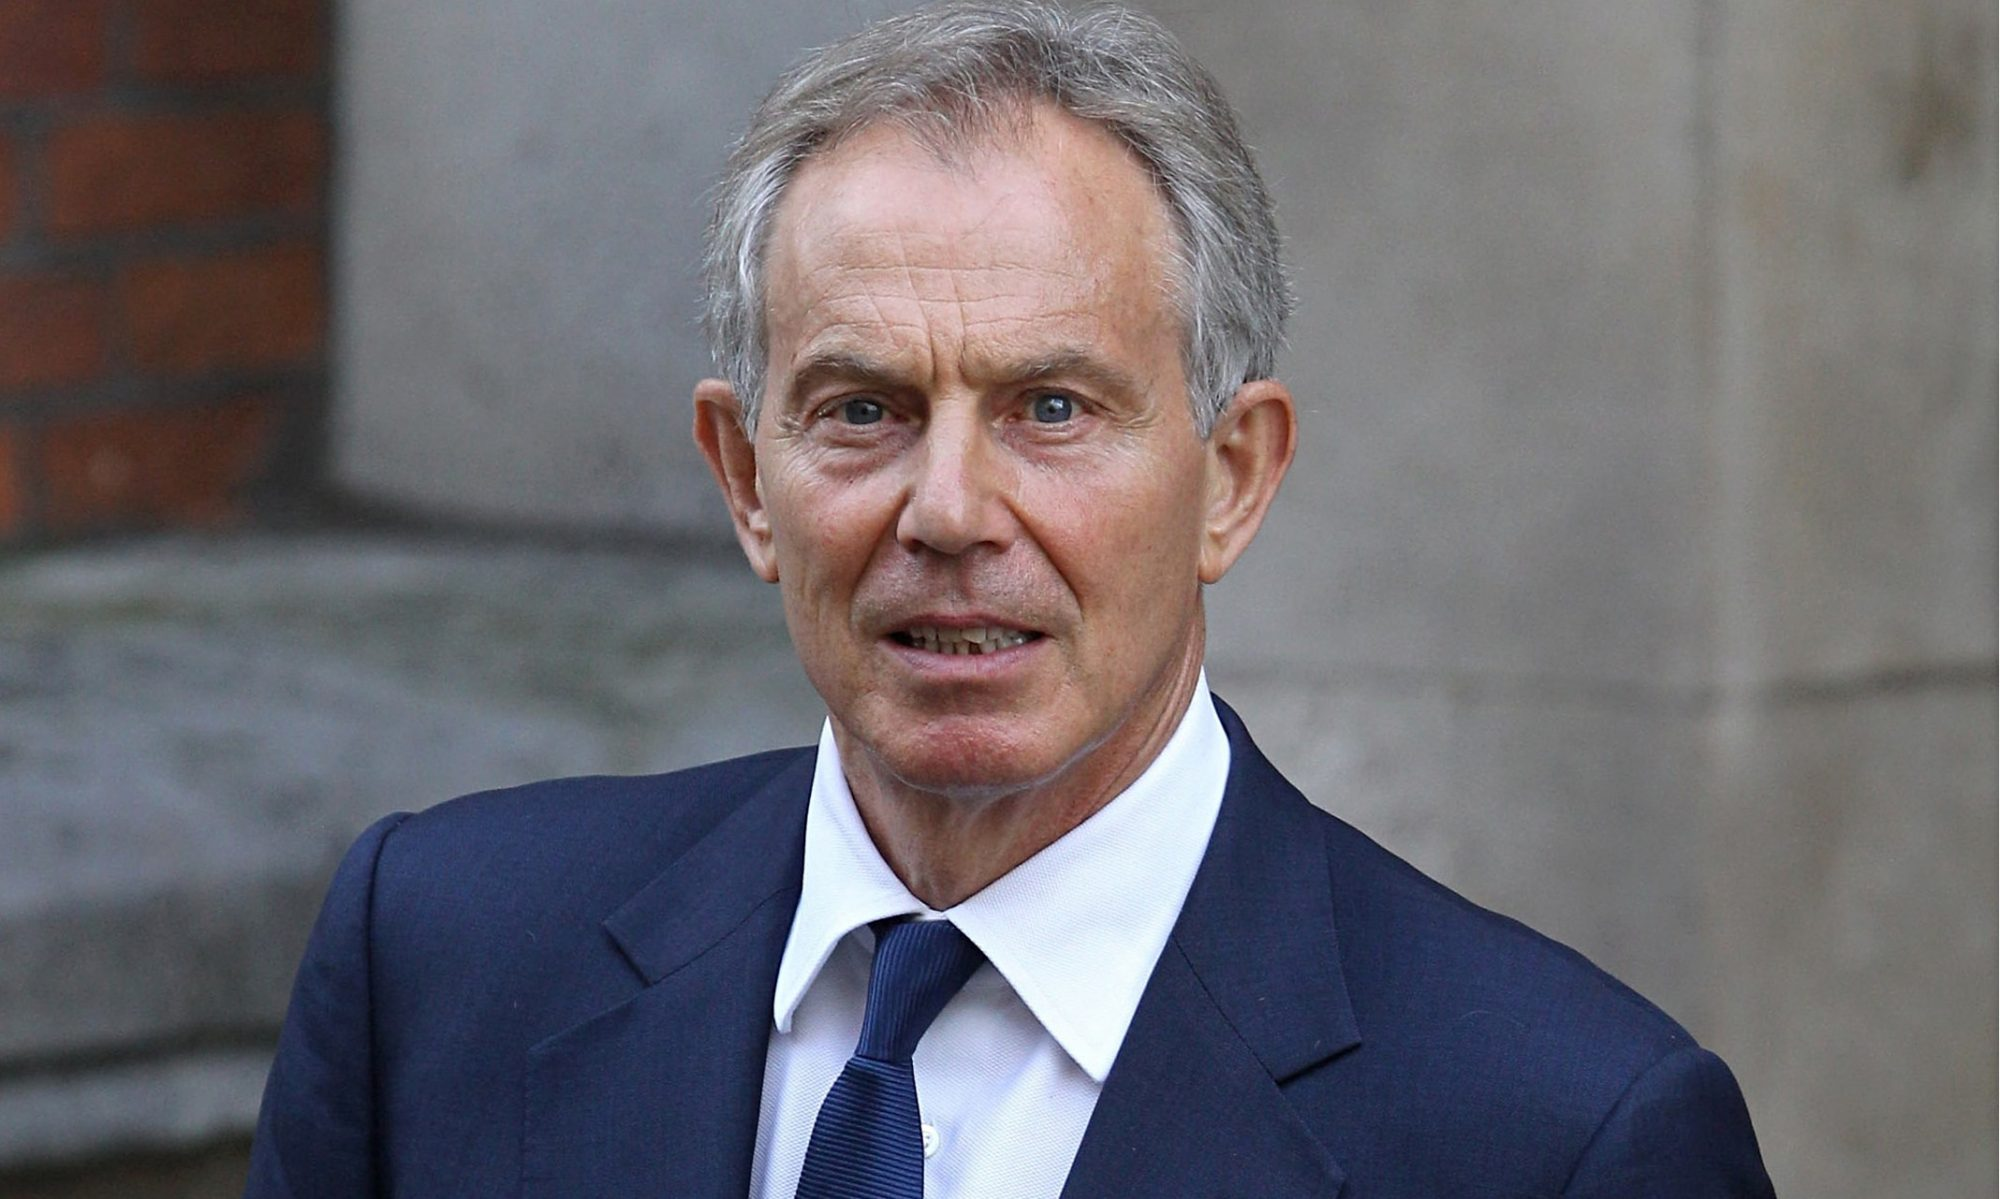 Tony Blair's Comments Represent an Attack on the Foundations of Democracy